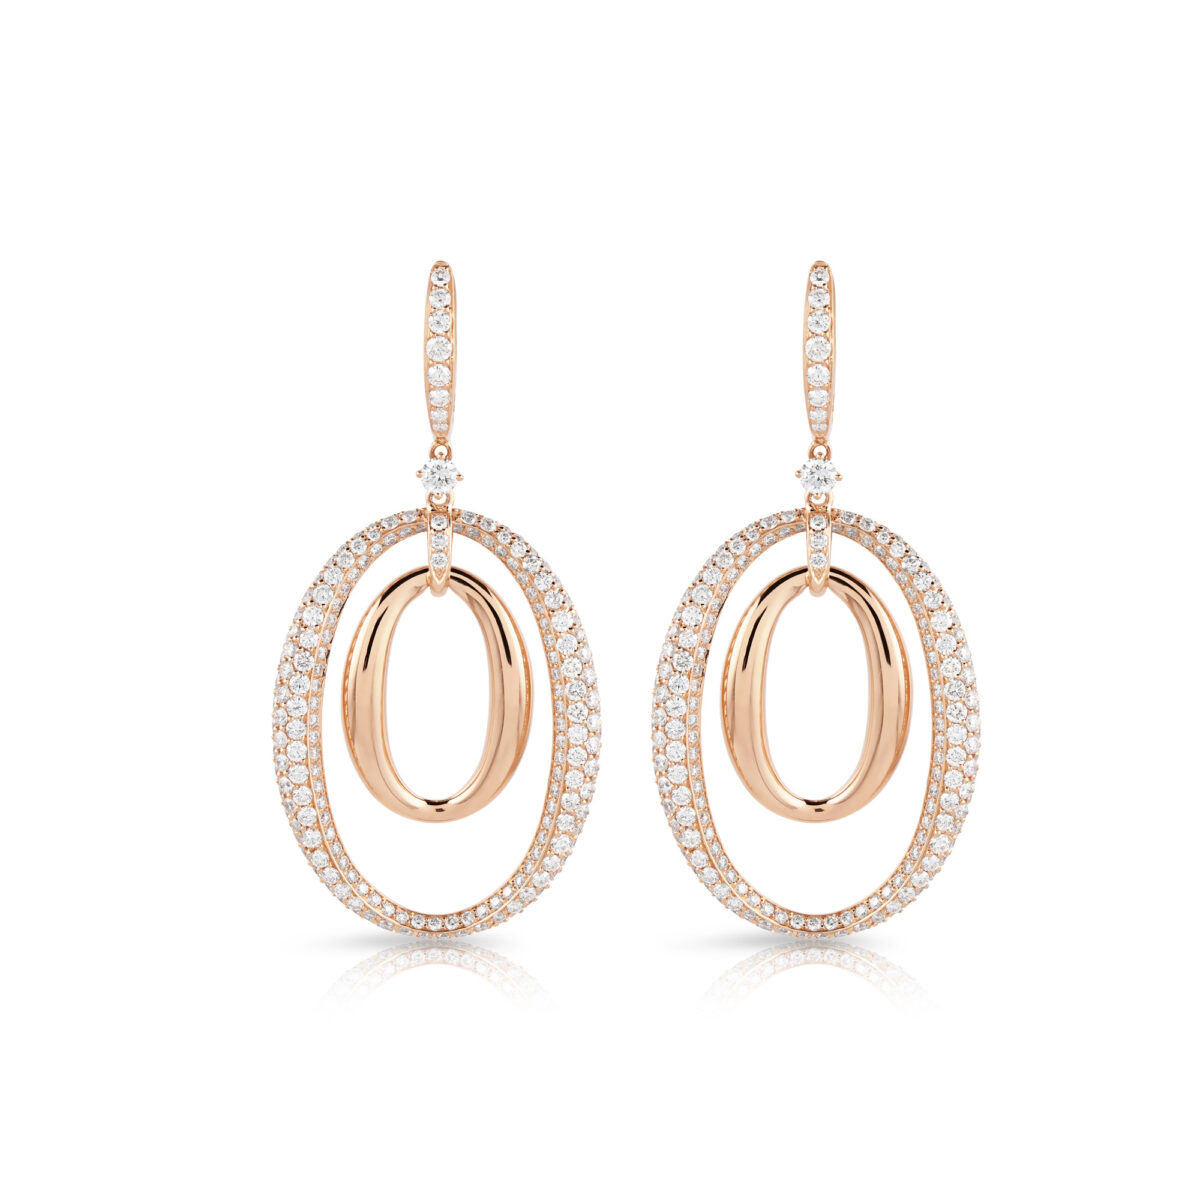 product/s/u/surround_double_eclipse_earring_30_28_668.jpg;;product/s/u/surround_double_eclipse_earring_30_28_668_l_s.jpg;;product/d/m/dmr-packaging_206_1_10.jpg